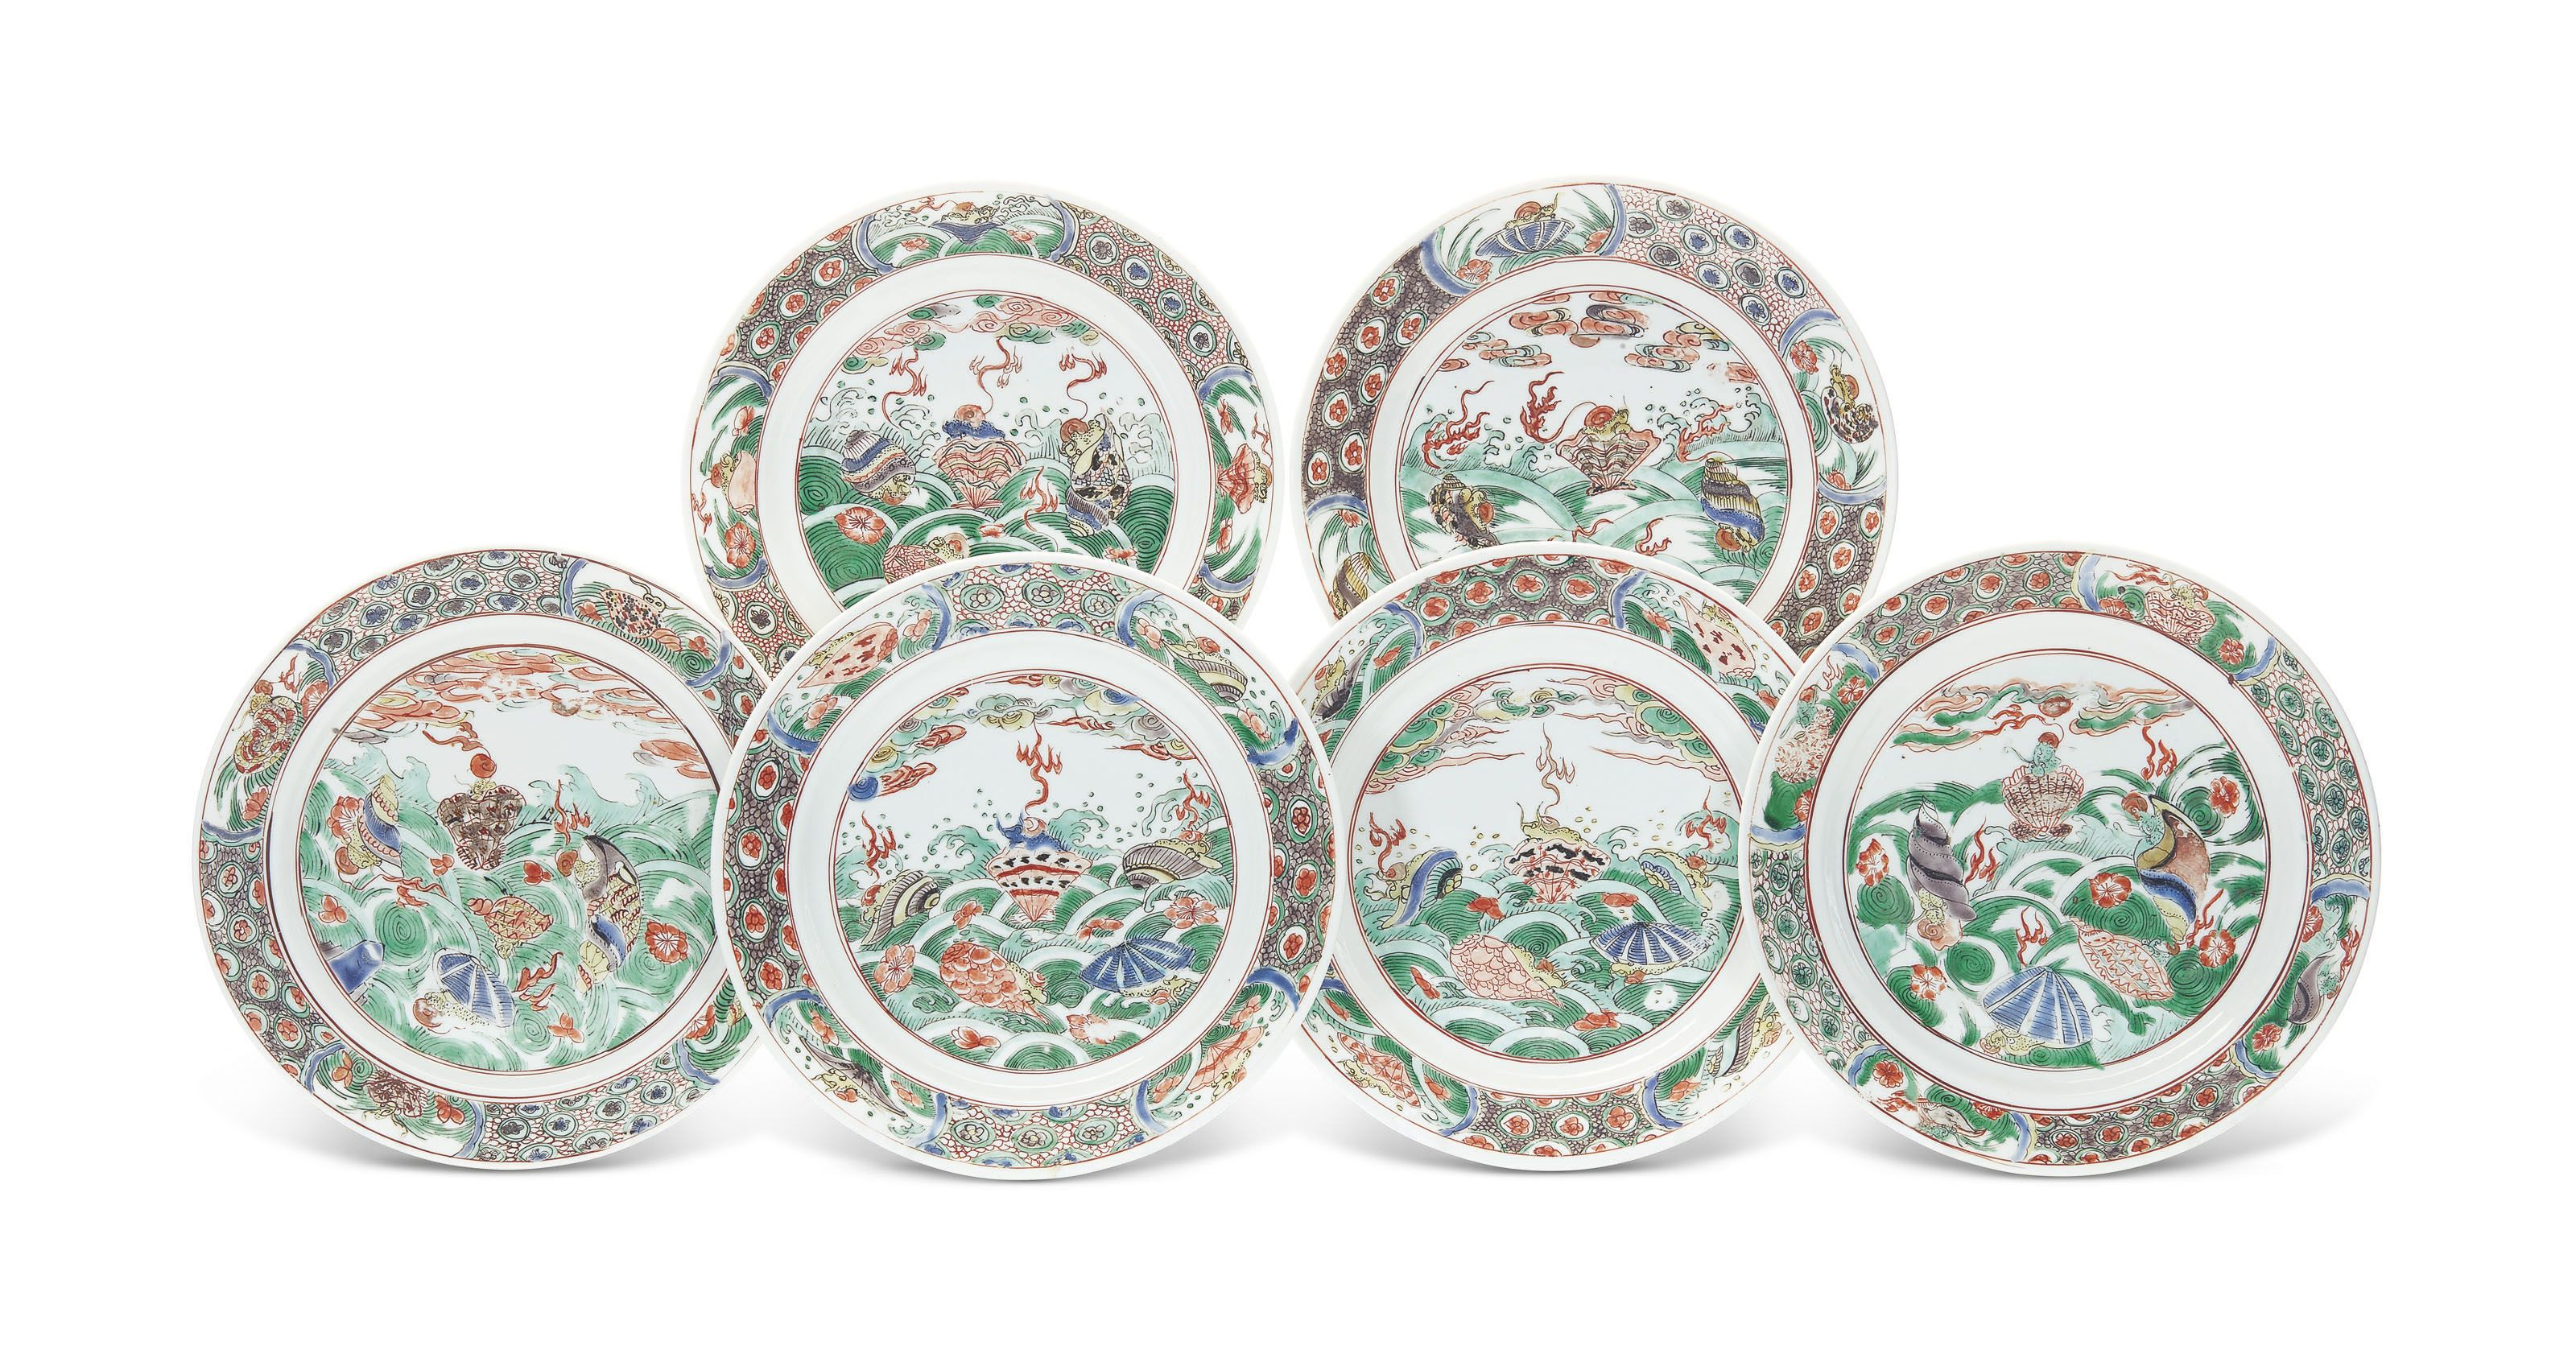 A Set Of Six Famille Verte Plates Kangxi Period Circa 1680 All Other Categories Of Objects Plates Dishes Christie S Chinese Ceramics Kangxi Famille